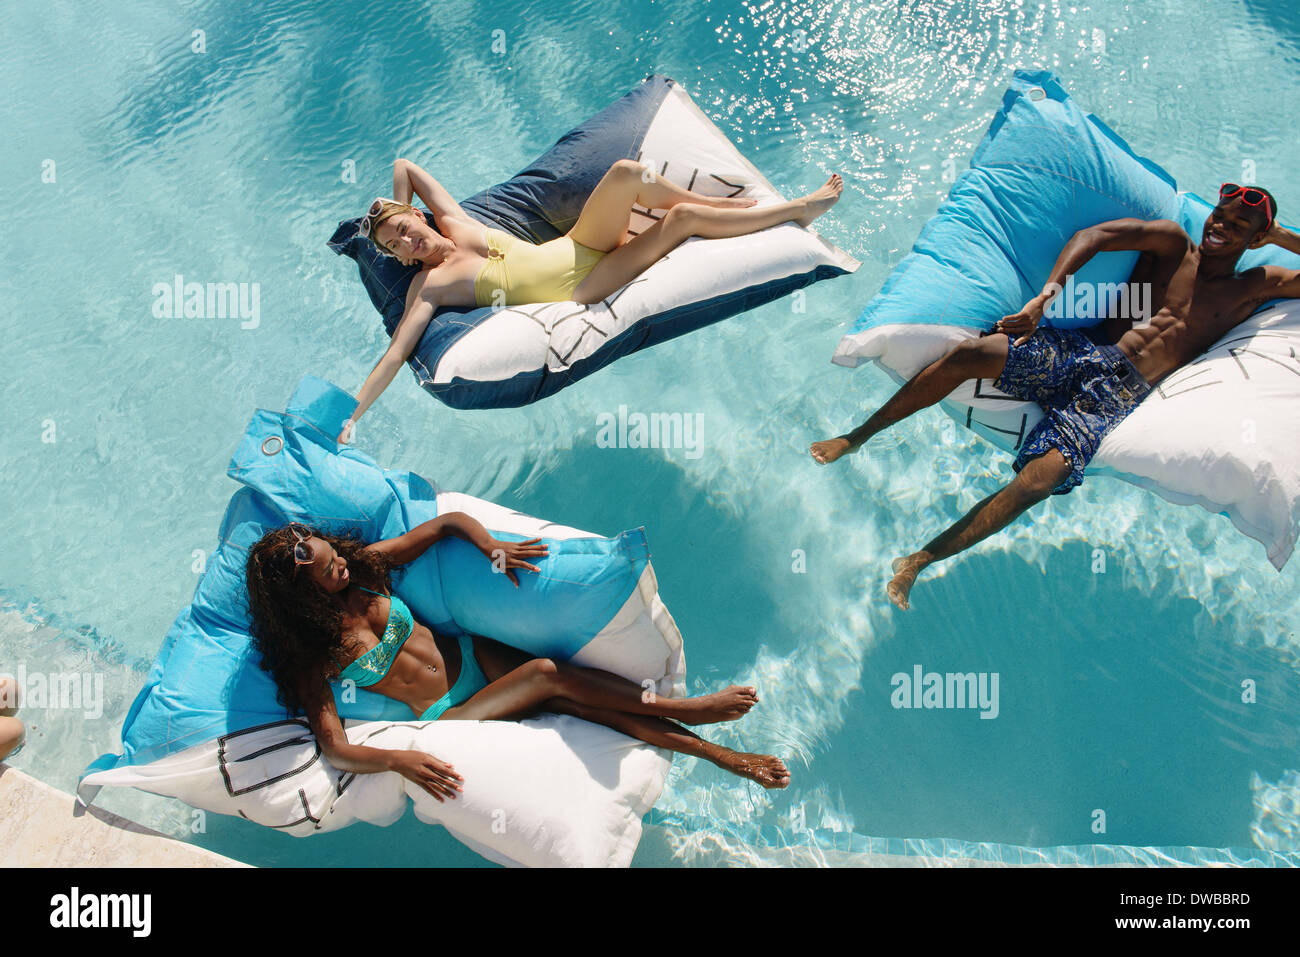 Trois jeunes adultes couchée sur lits de piscine, Providenciales, Turks and Caicos Islands, Caribbean Photo Stock